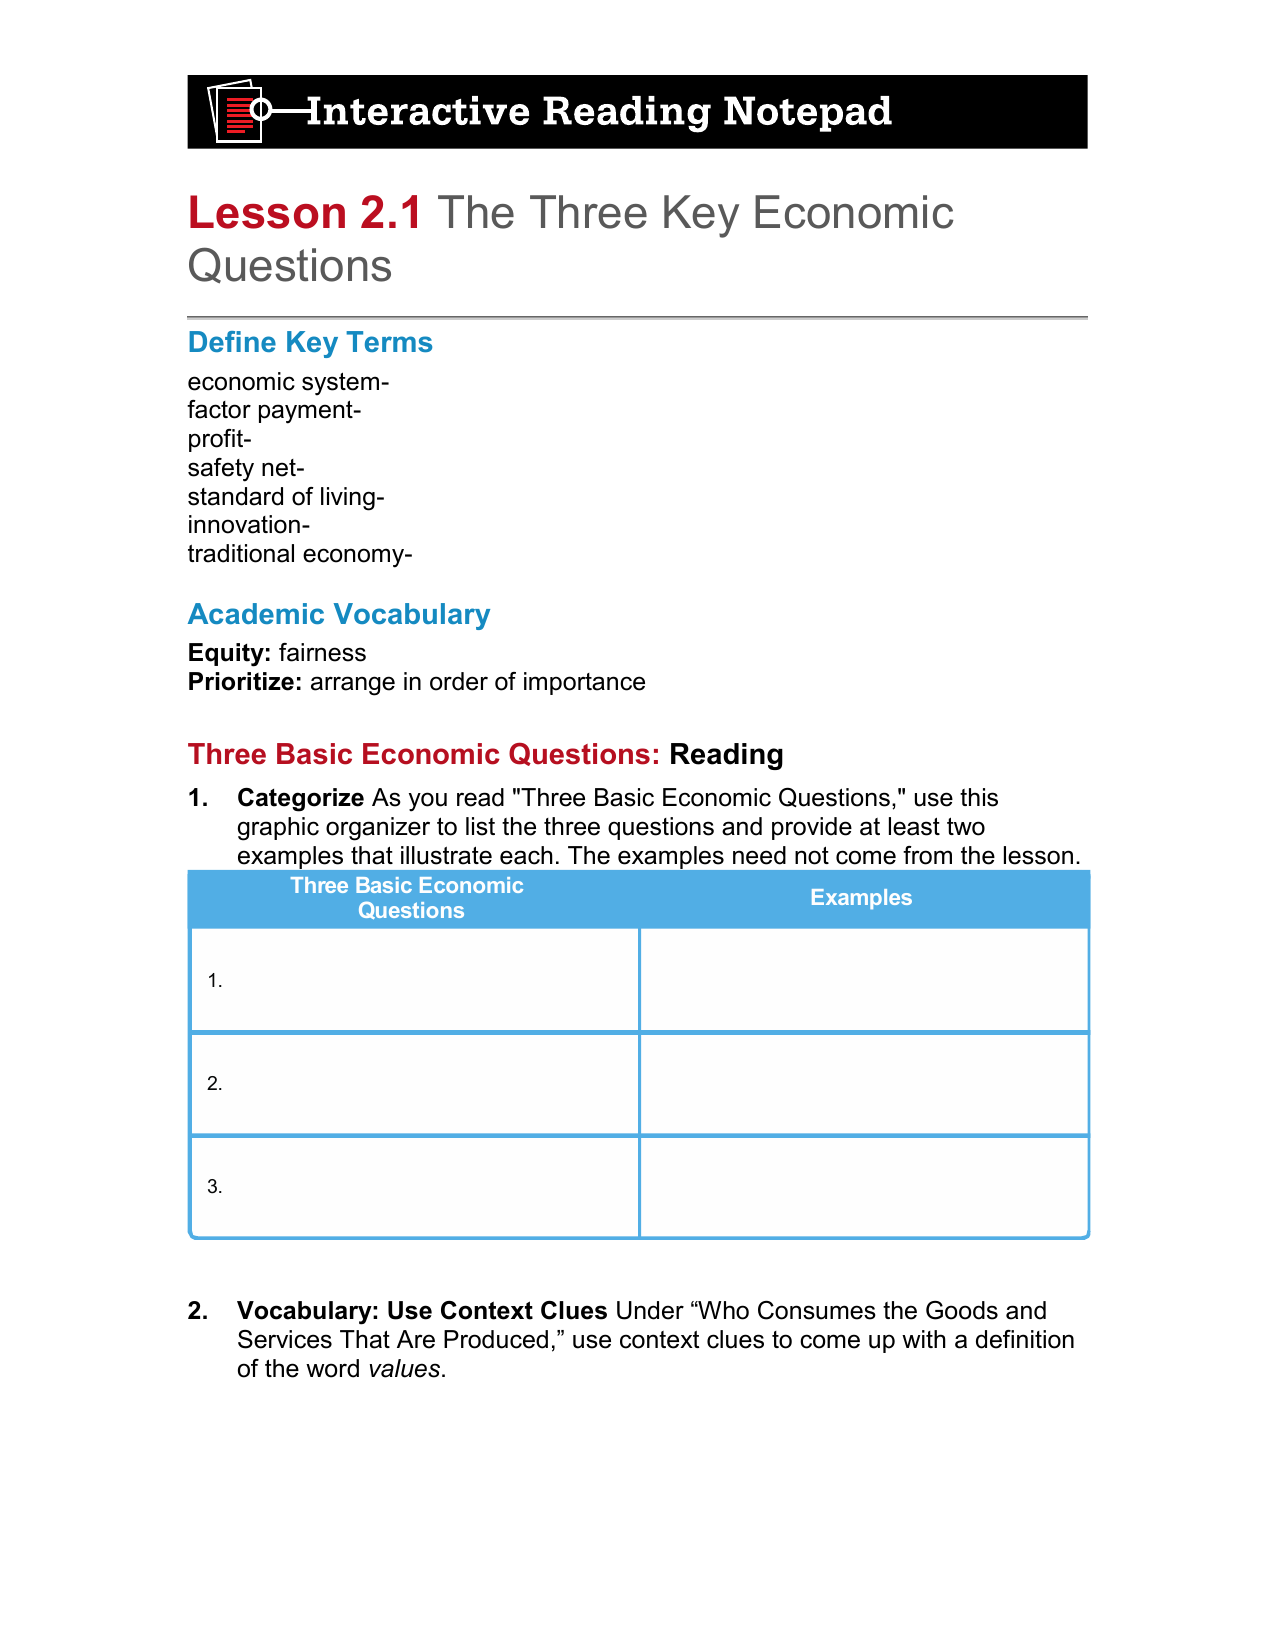 the three basic economic questions are